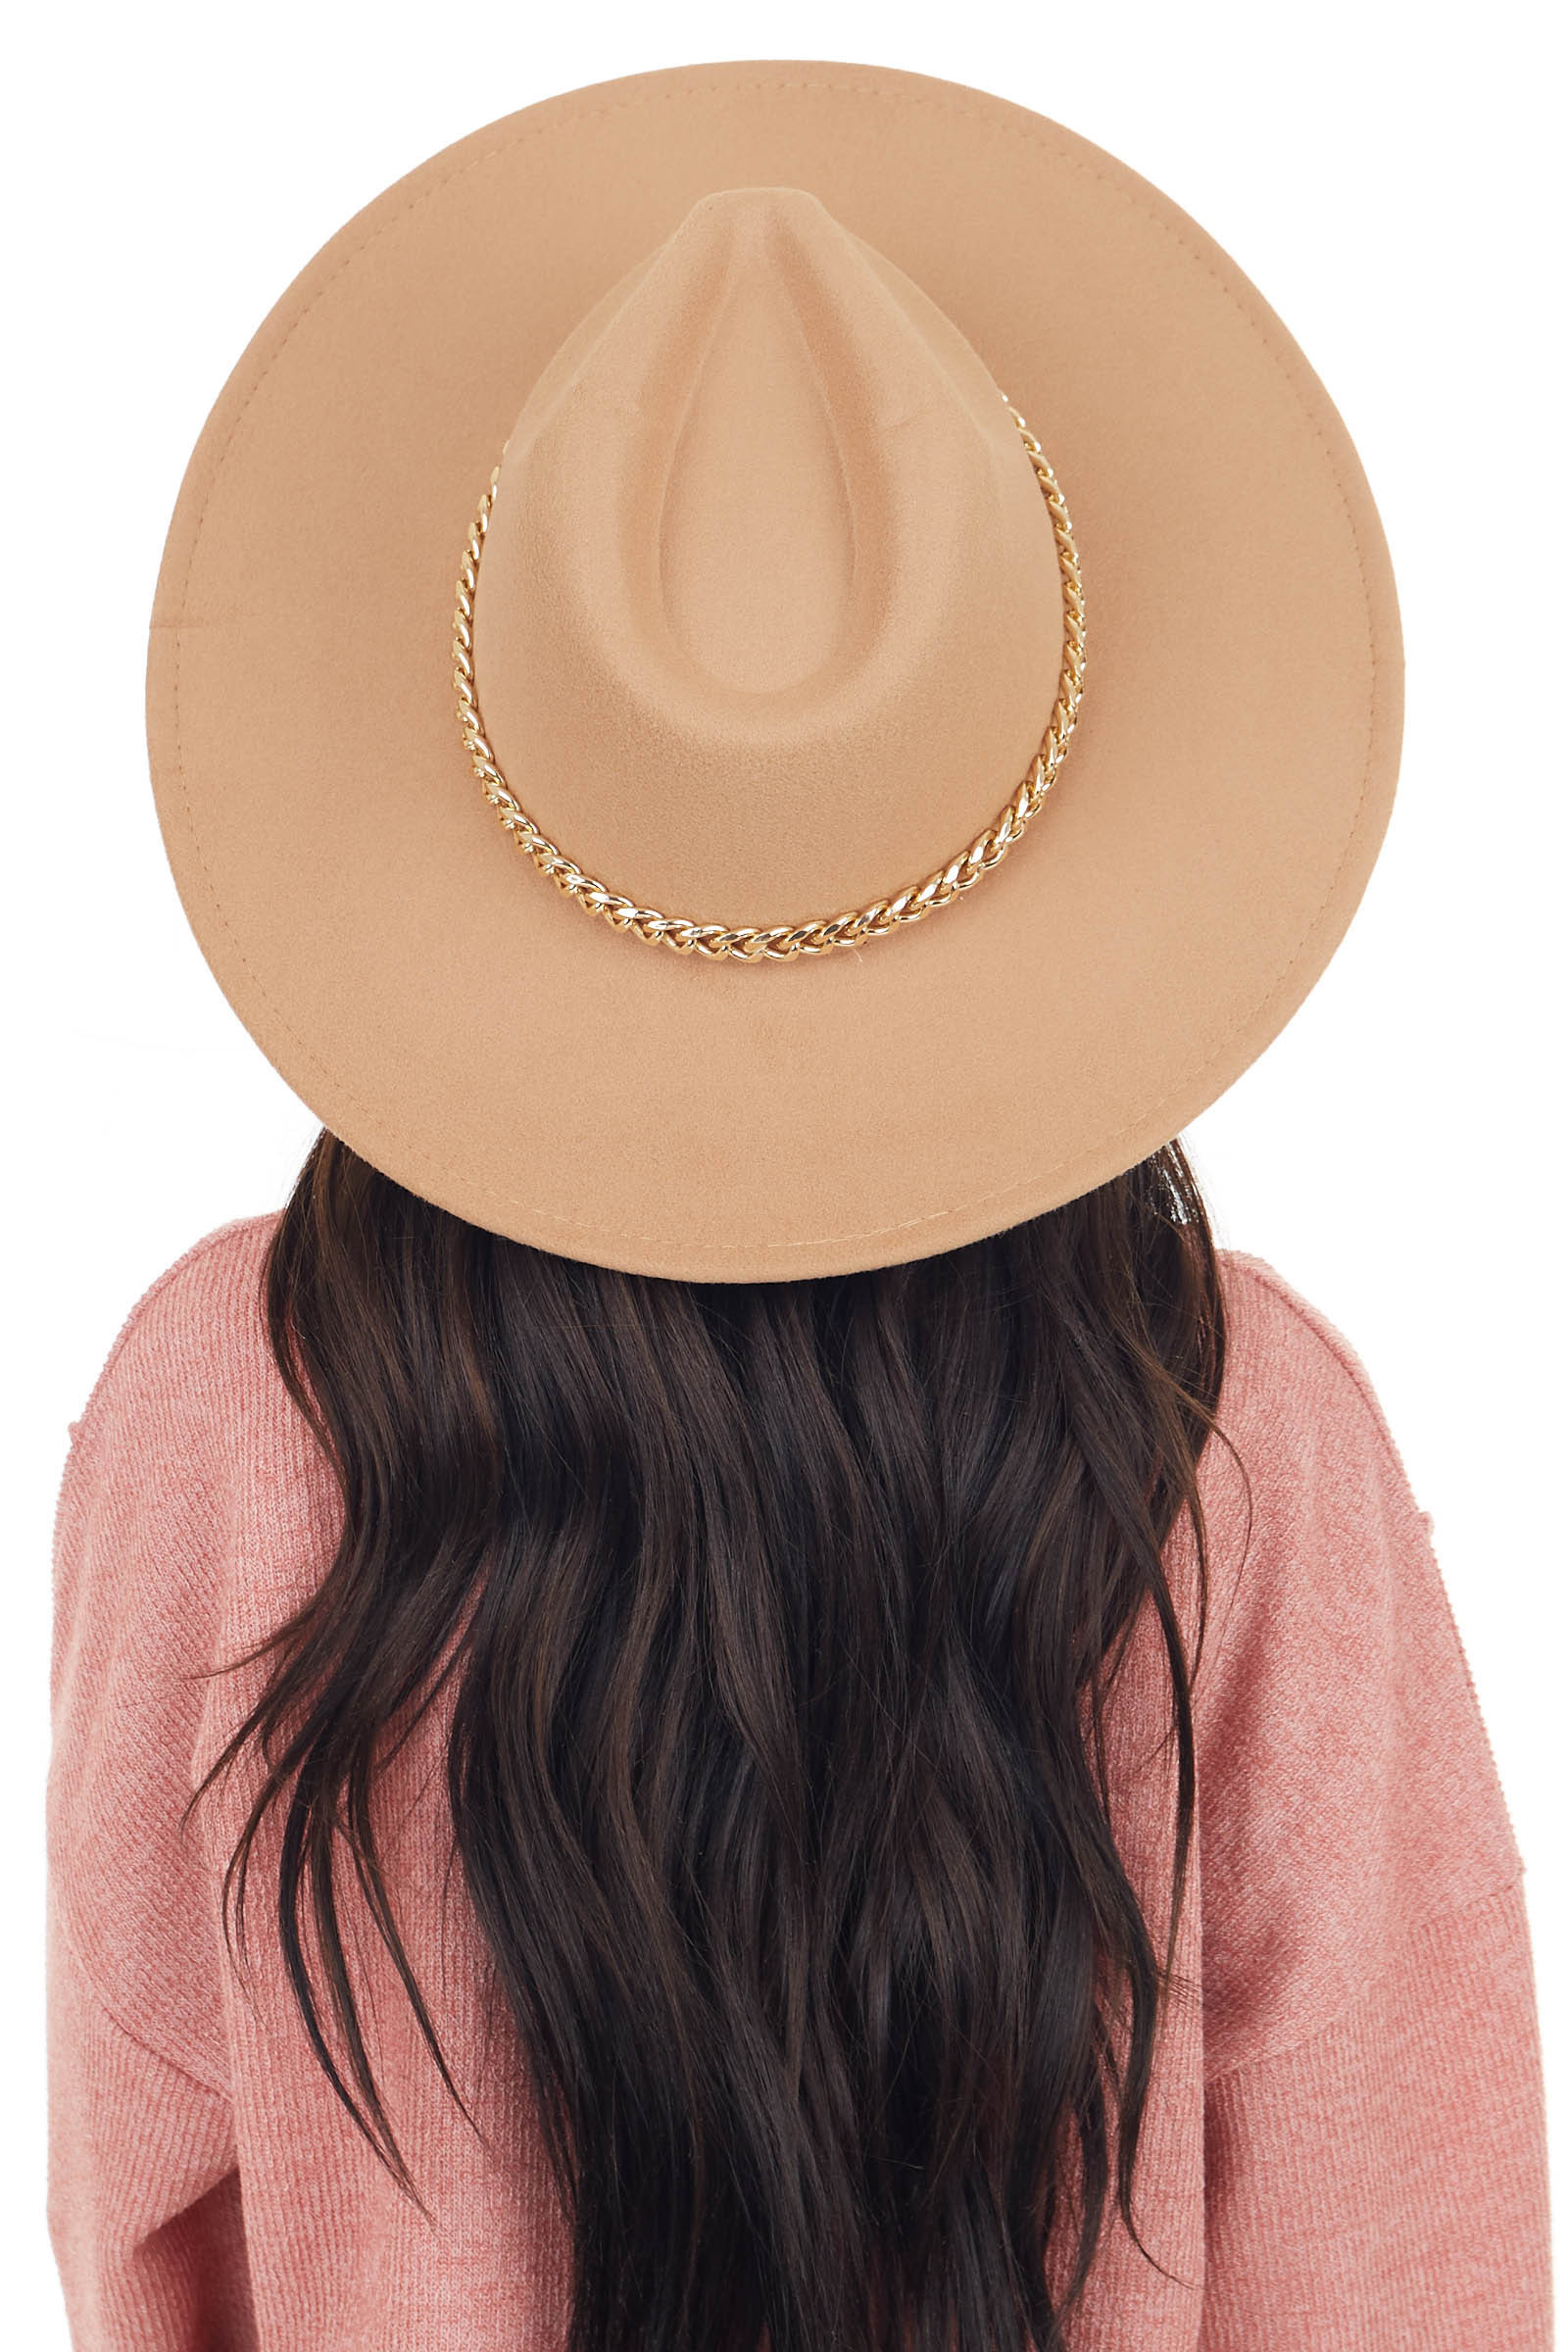 Camel Felt Flat Brim Western Style Hat with Chain Detail